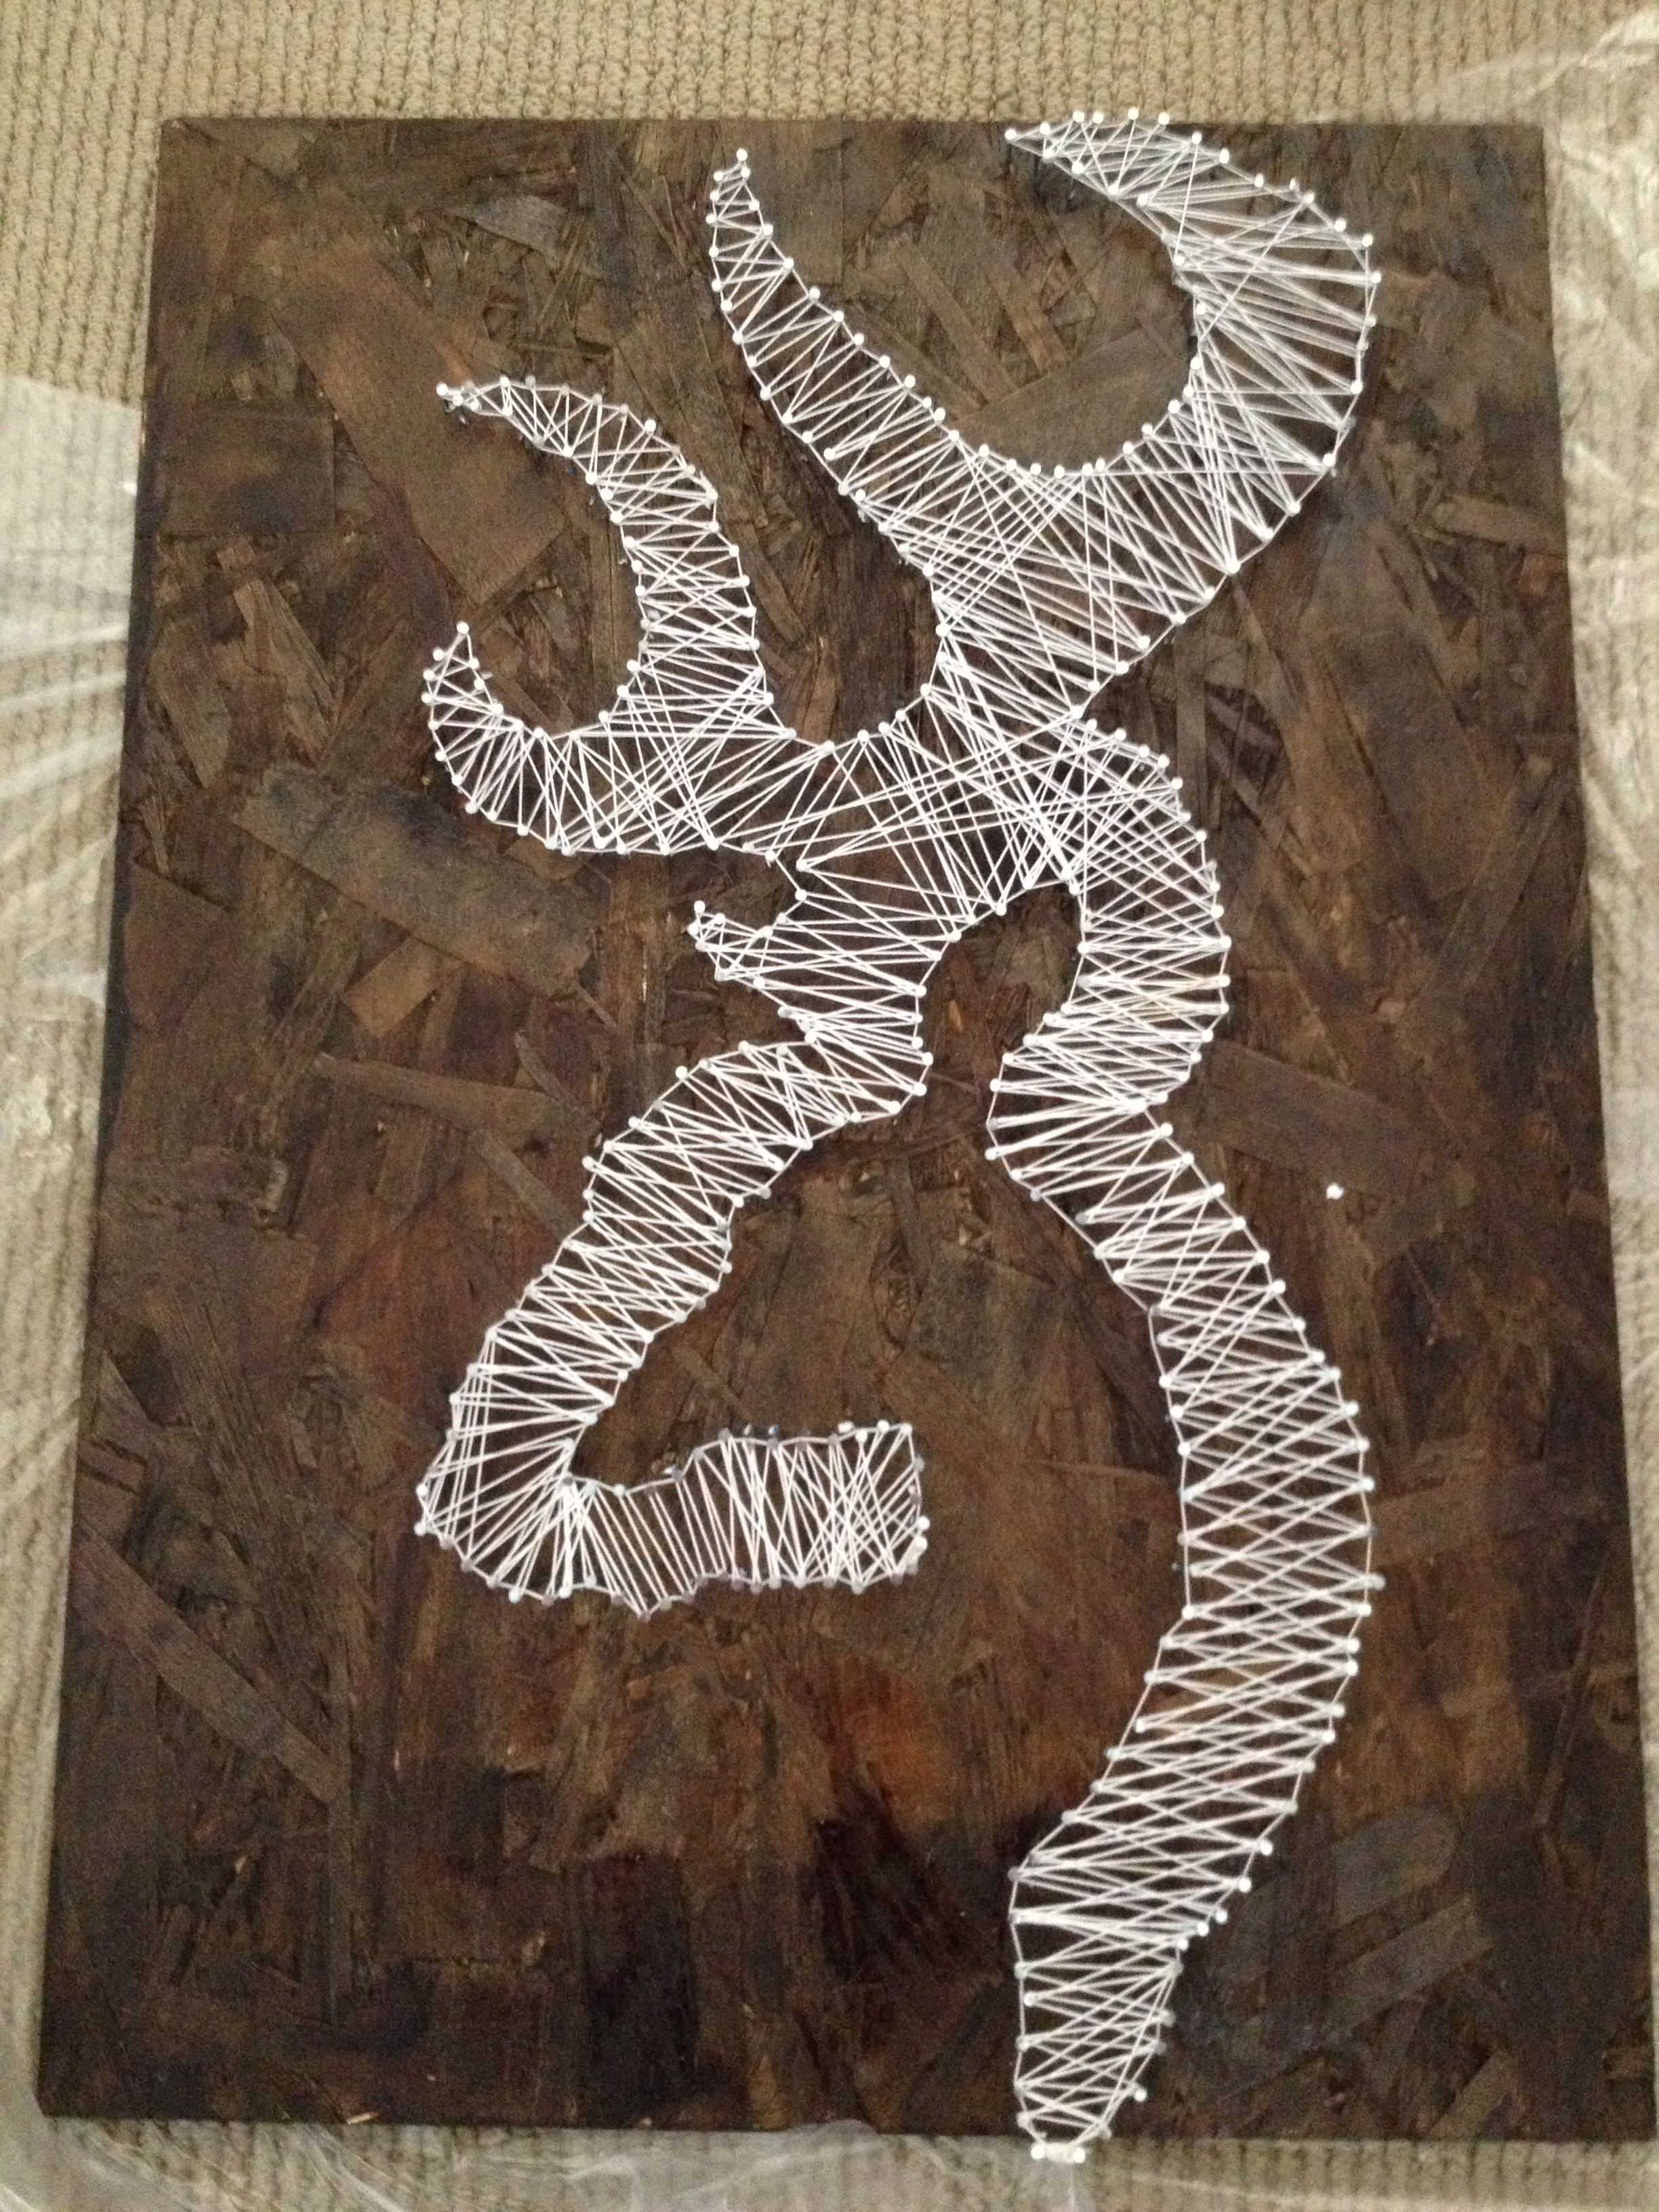 Browning Deer Logo Homemade Easy Wood Nails String And Stencil Of